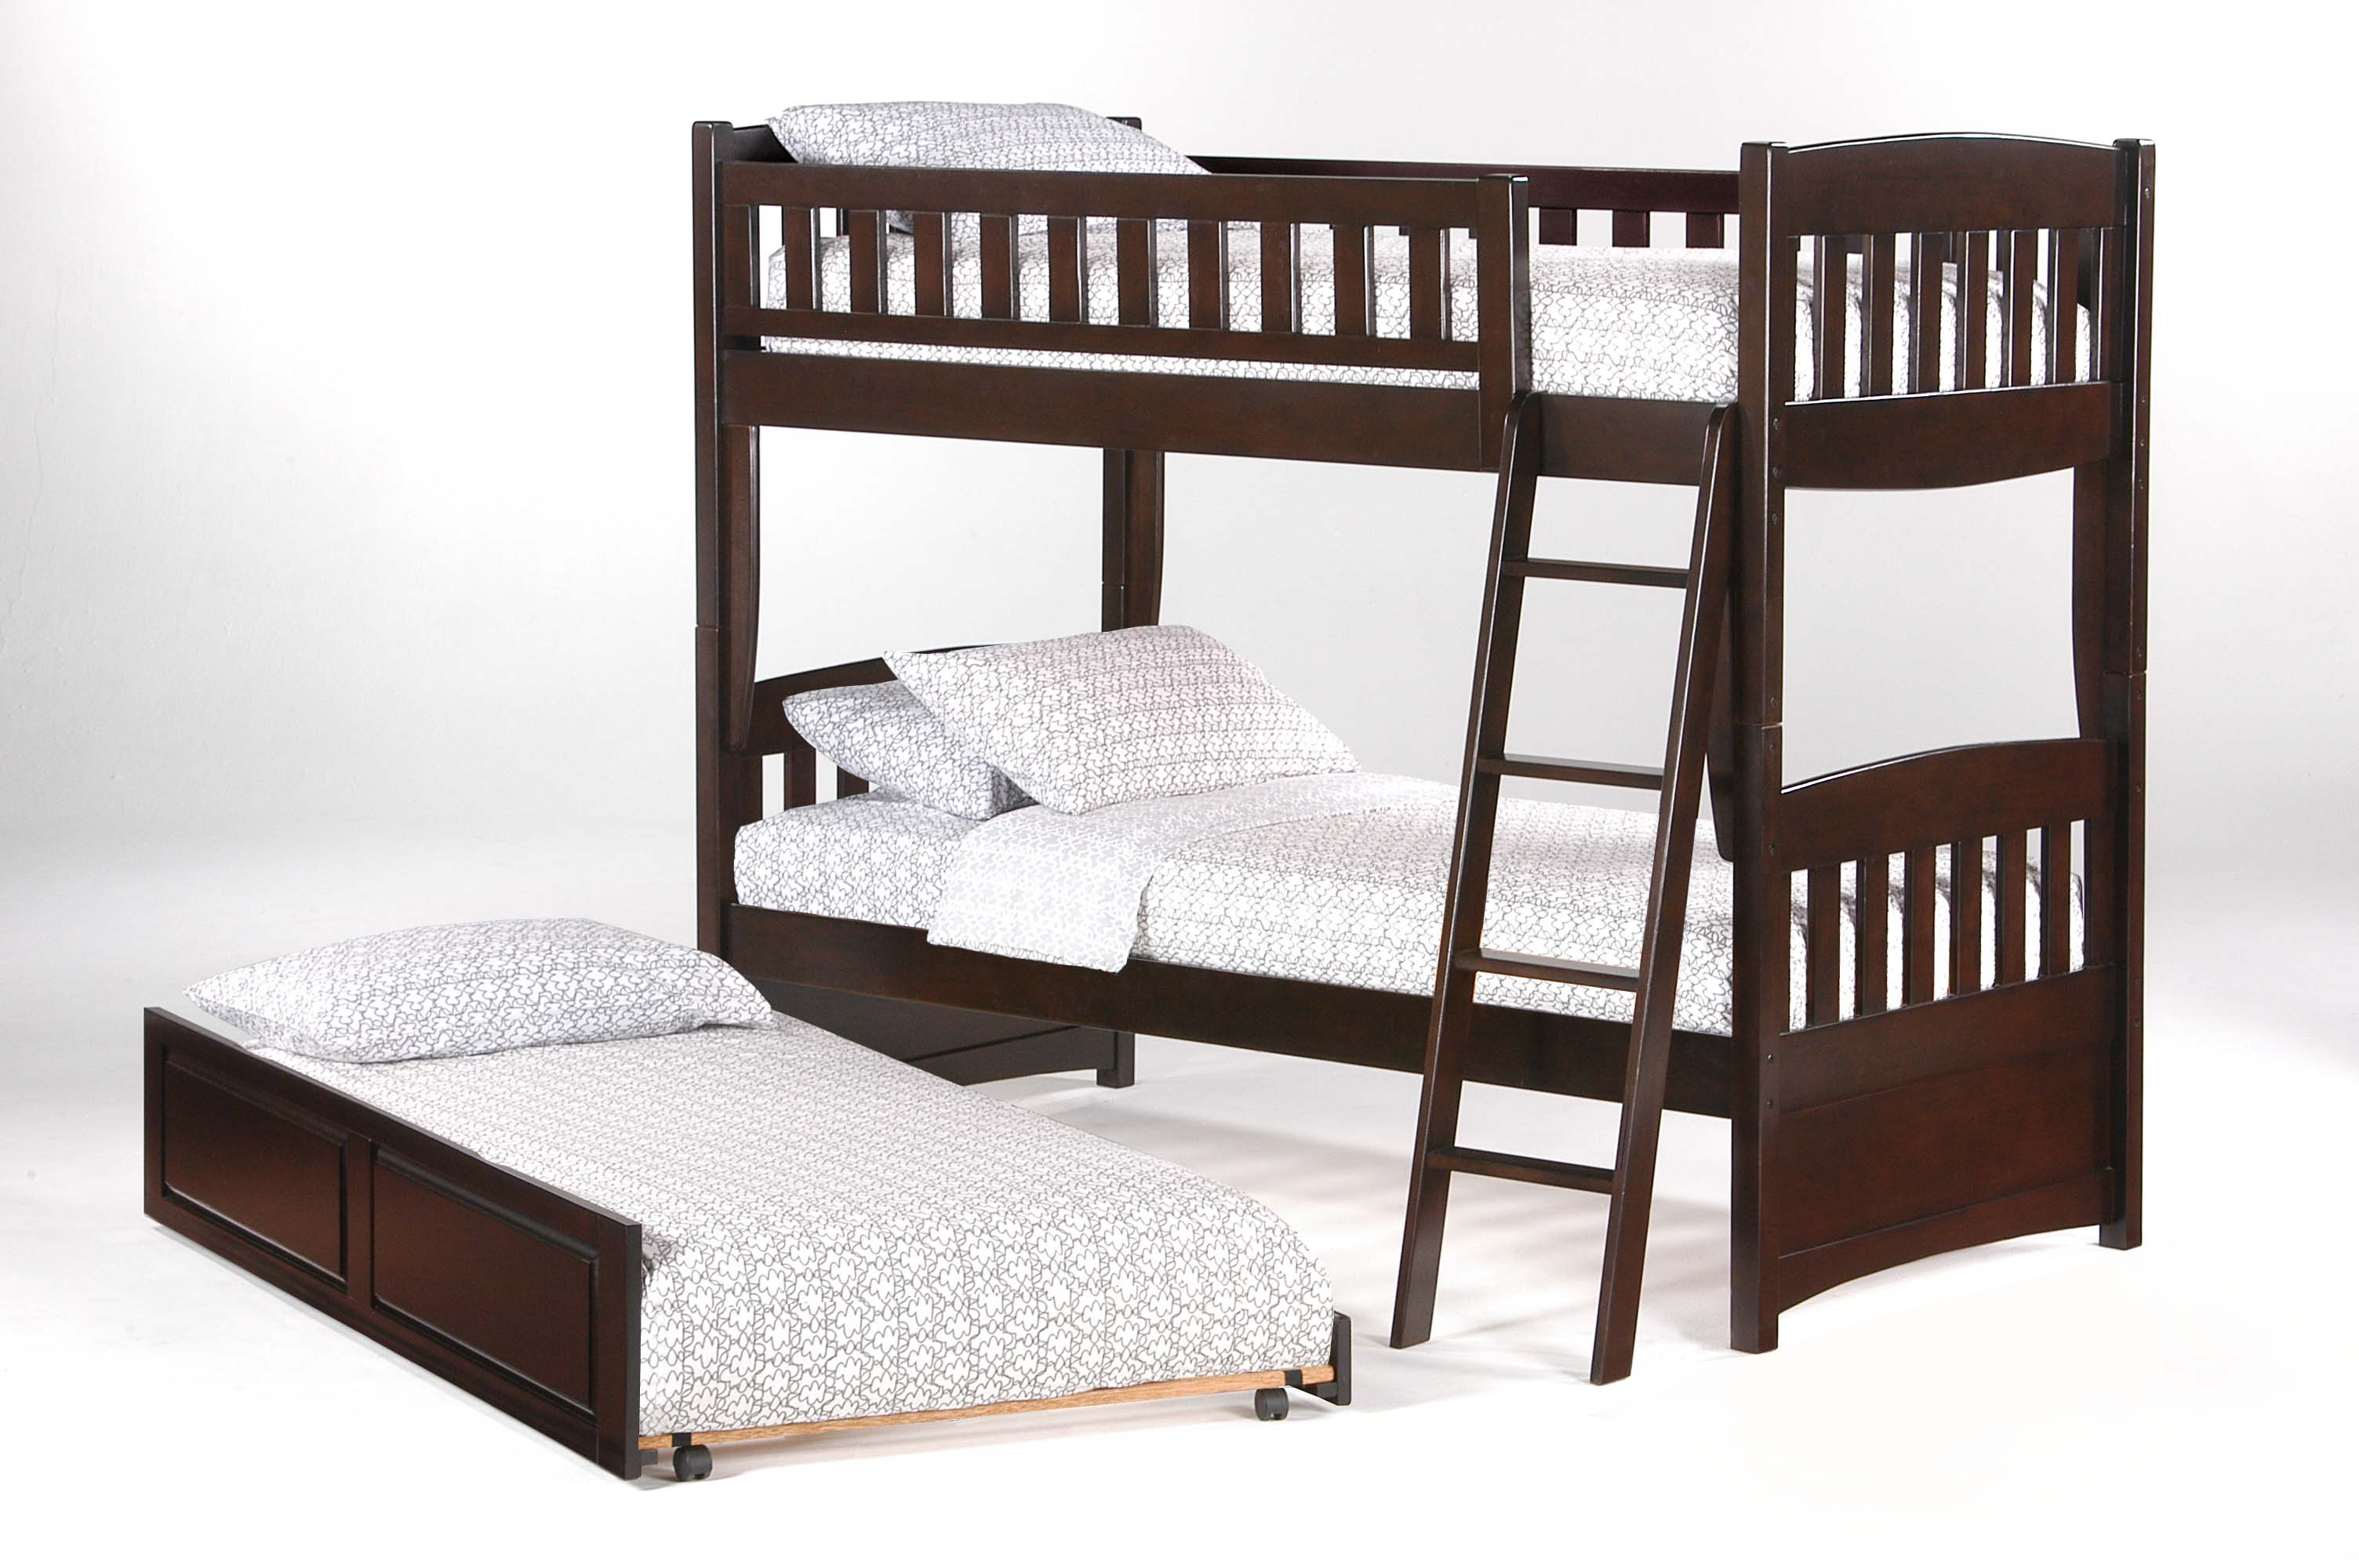 spices collection worleybeds new bedford ma. Black Bedroom Furniture Sets. Home Design Ideas